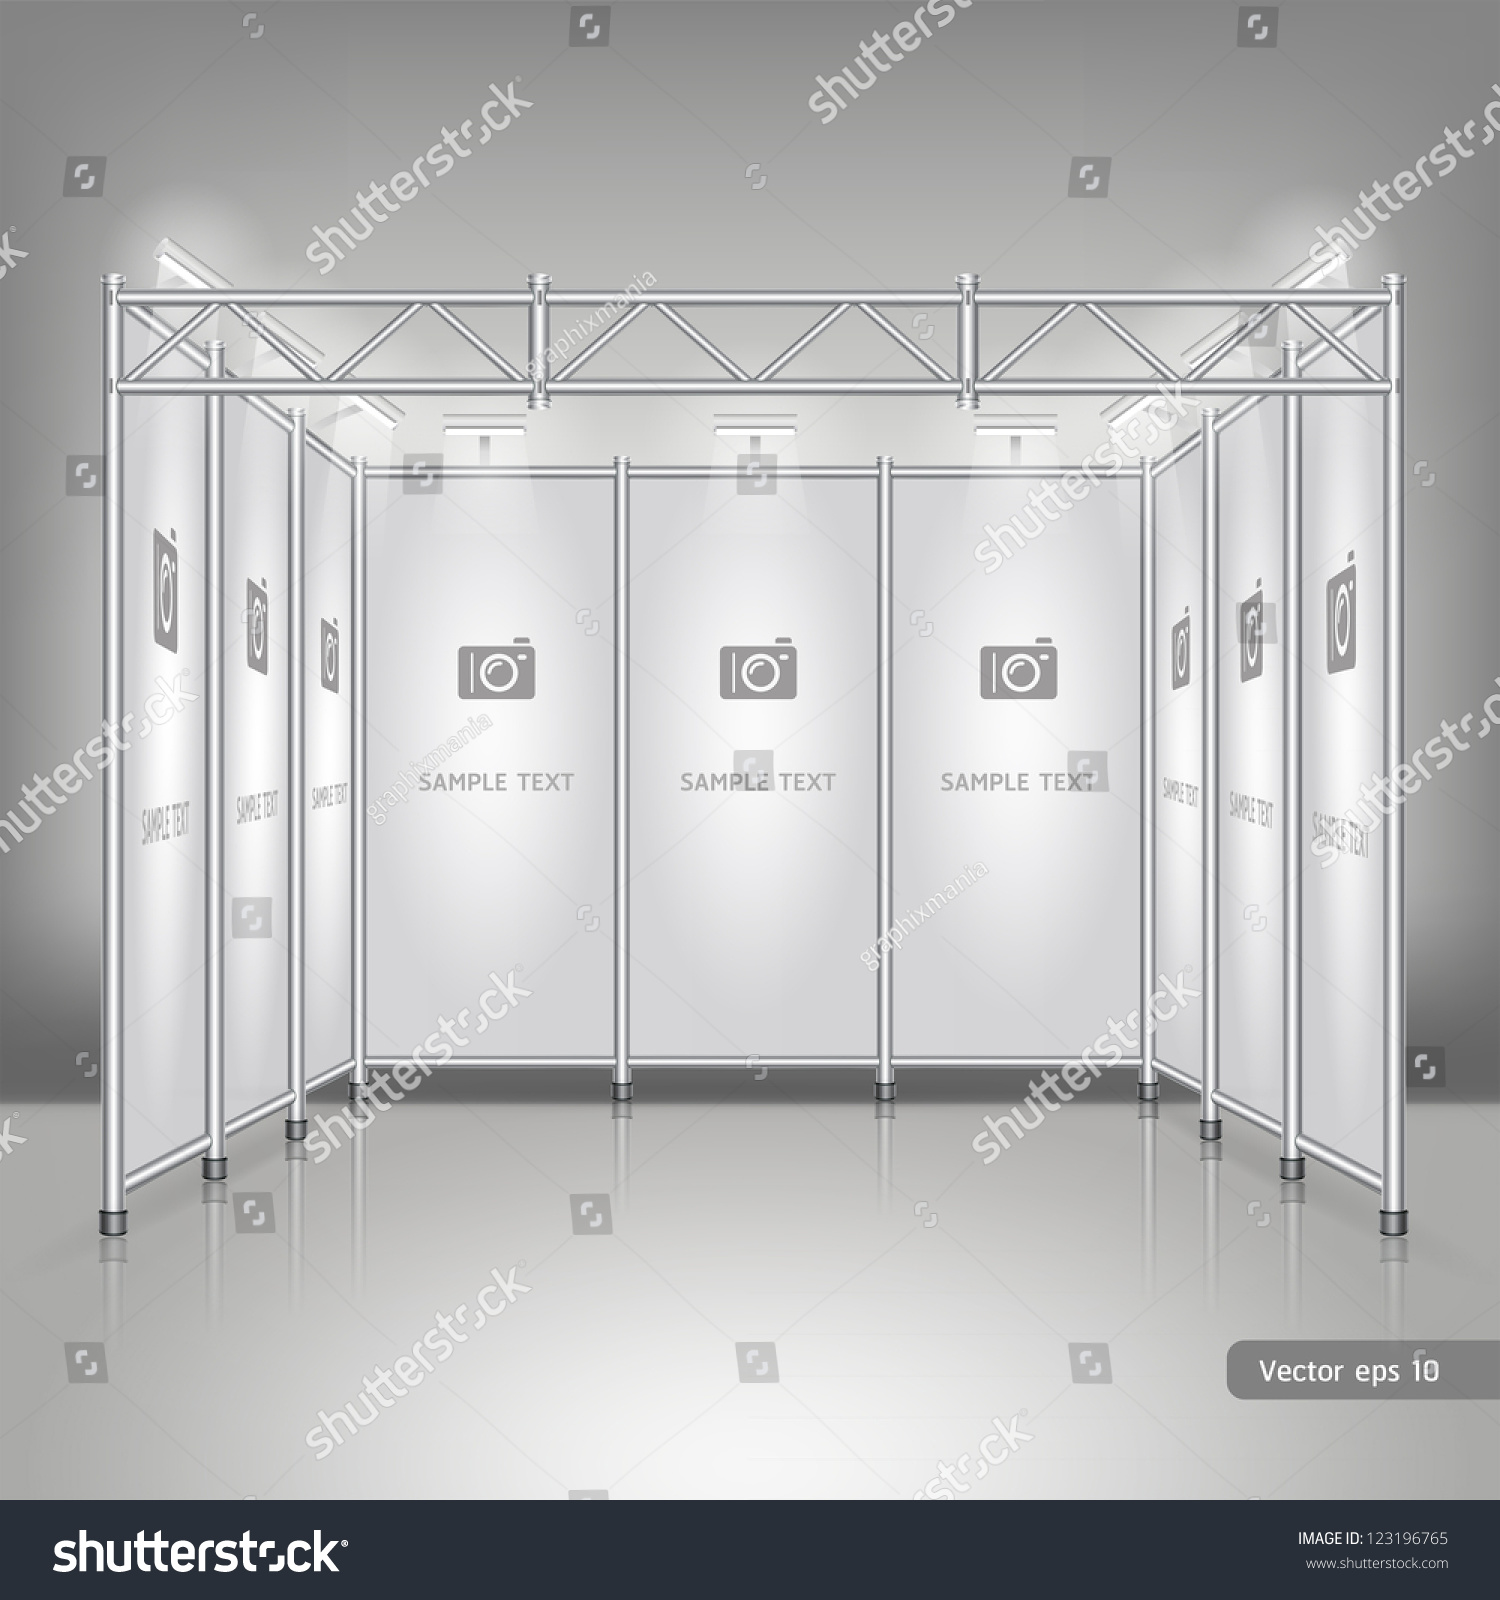 Simple Exhibition Stand Vector : Trade exhibition stand display vector illustration